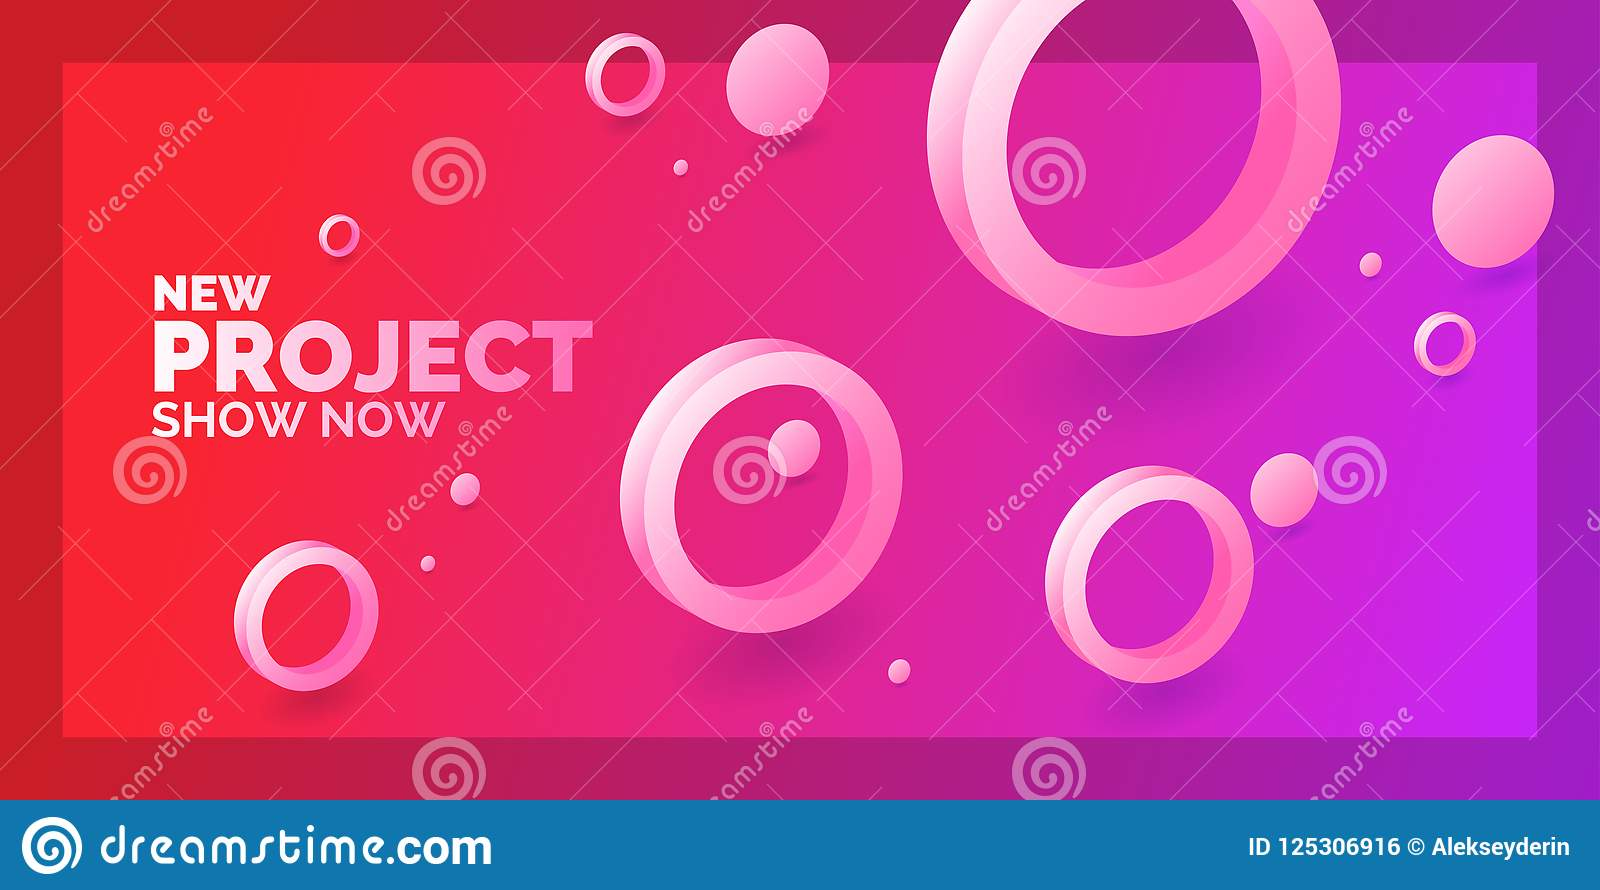 Modern Abstract Background Template With Circles Of Different Sizes